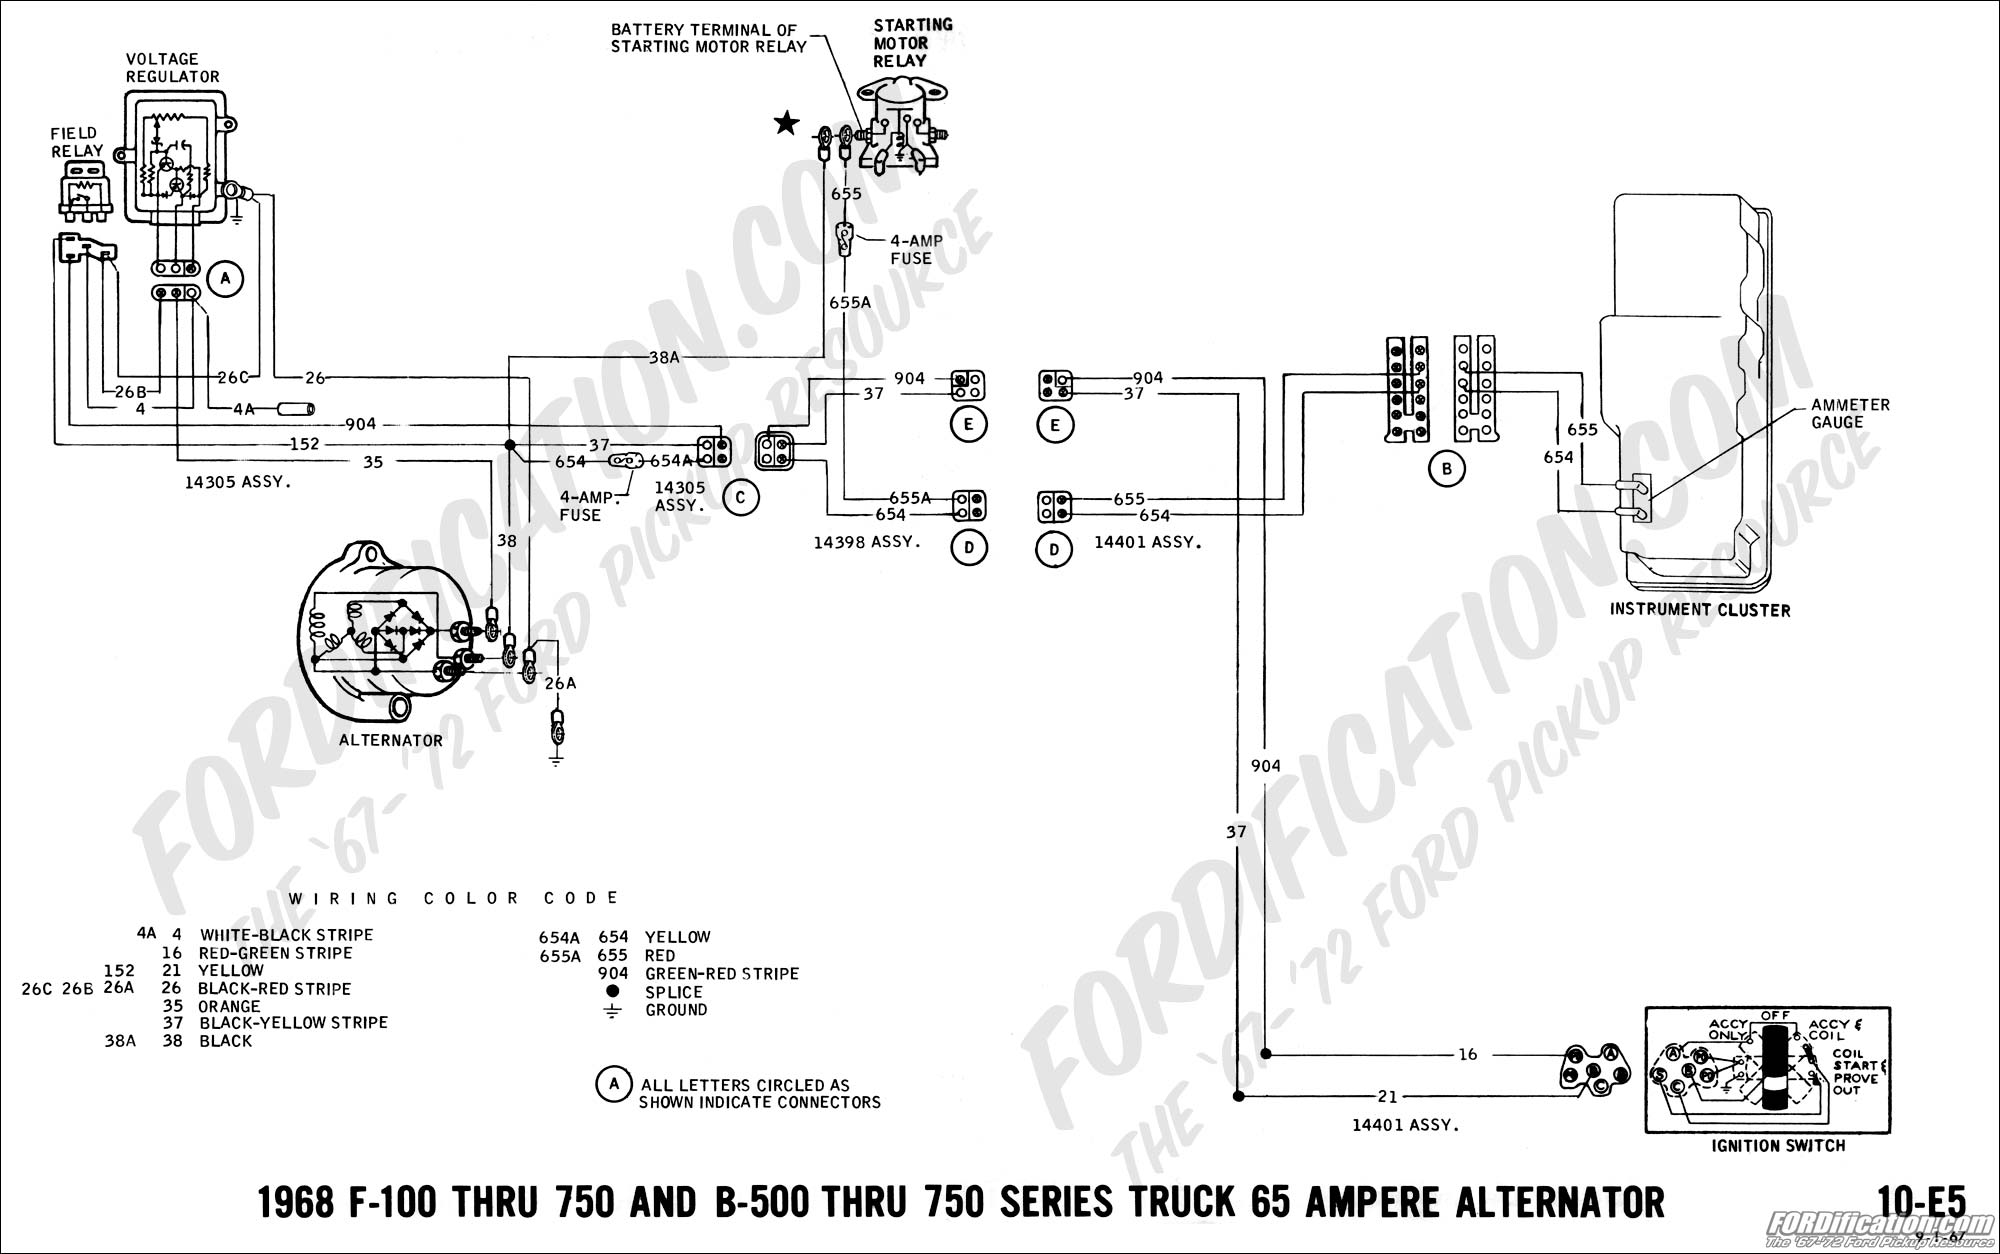 68 07 ford truck technical drawings and schematics section h wiring 1968 mustang ignition switch wiring diagram at gsmx.co